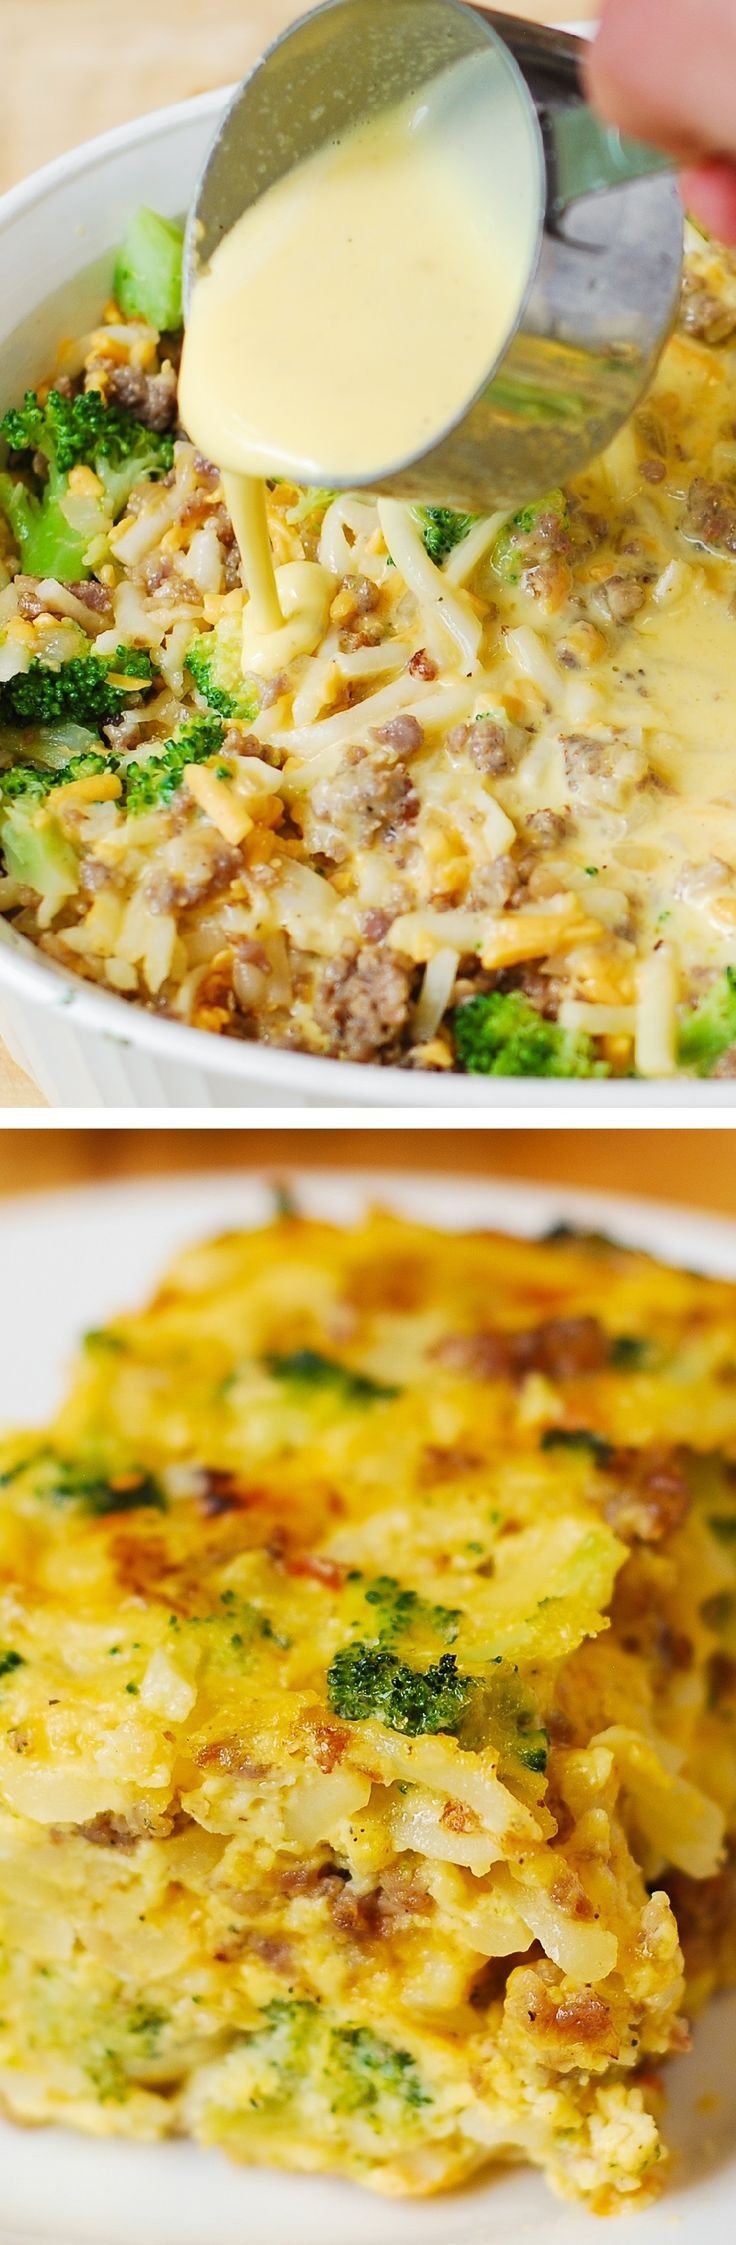 Breakfast Casserole with shredded hash brown potatoes, broccoli, cheddar cheese, sausage and eggs. Everything you want to have for breakfast in one easy casserole!